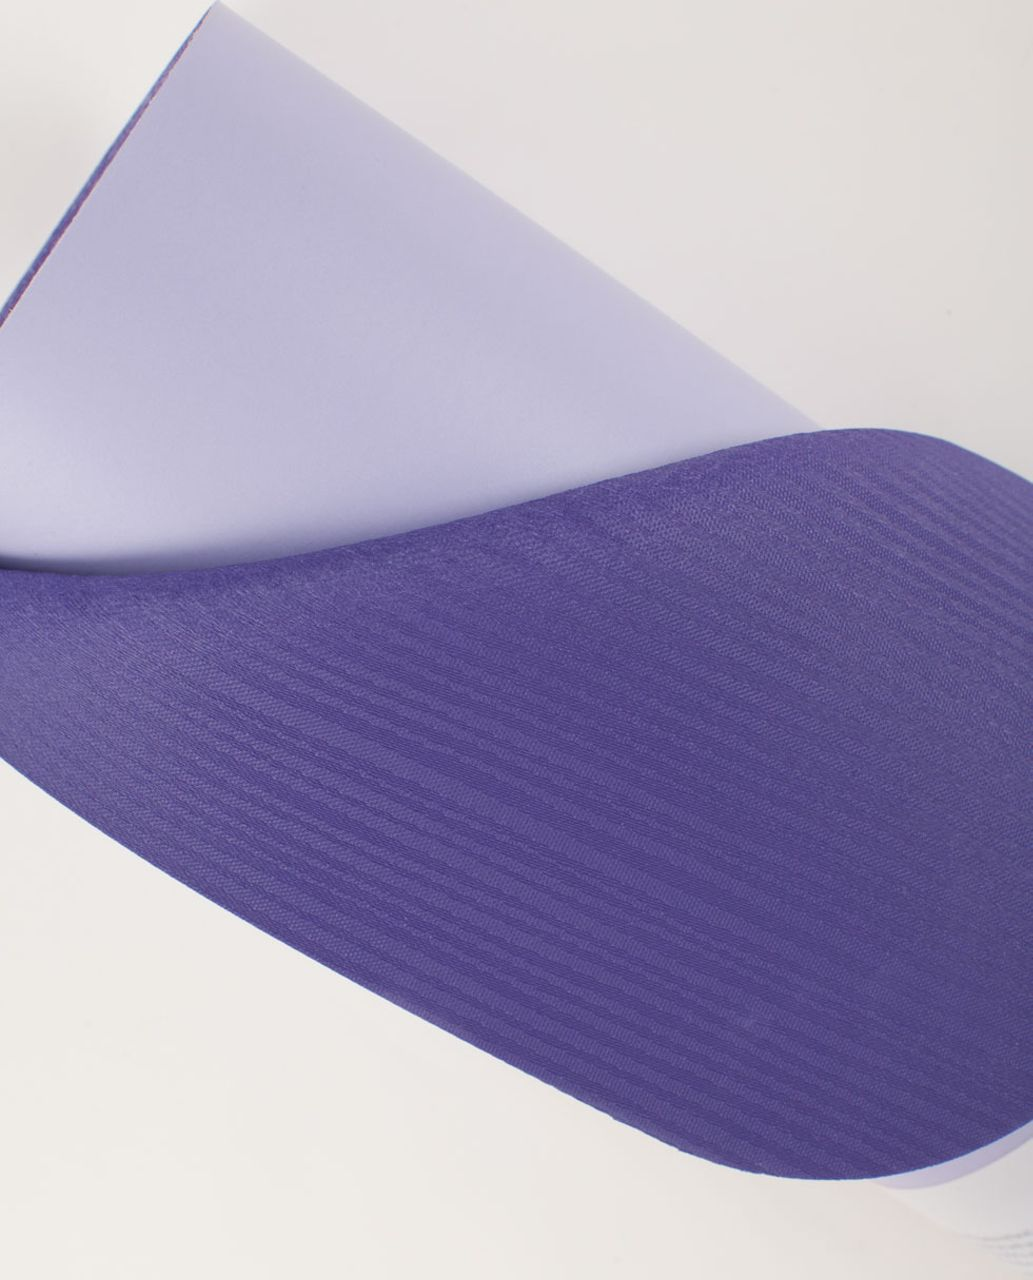 Lululemon The Mat - Lilac / Bruised Berry